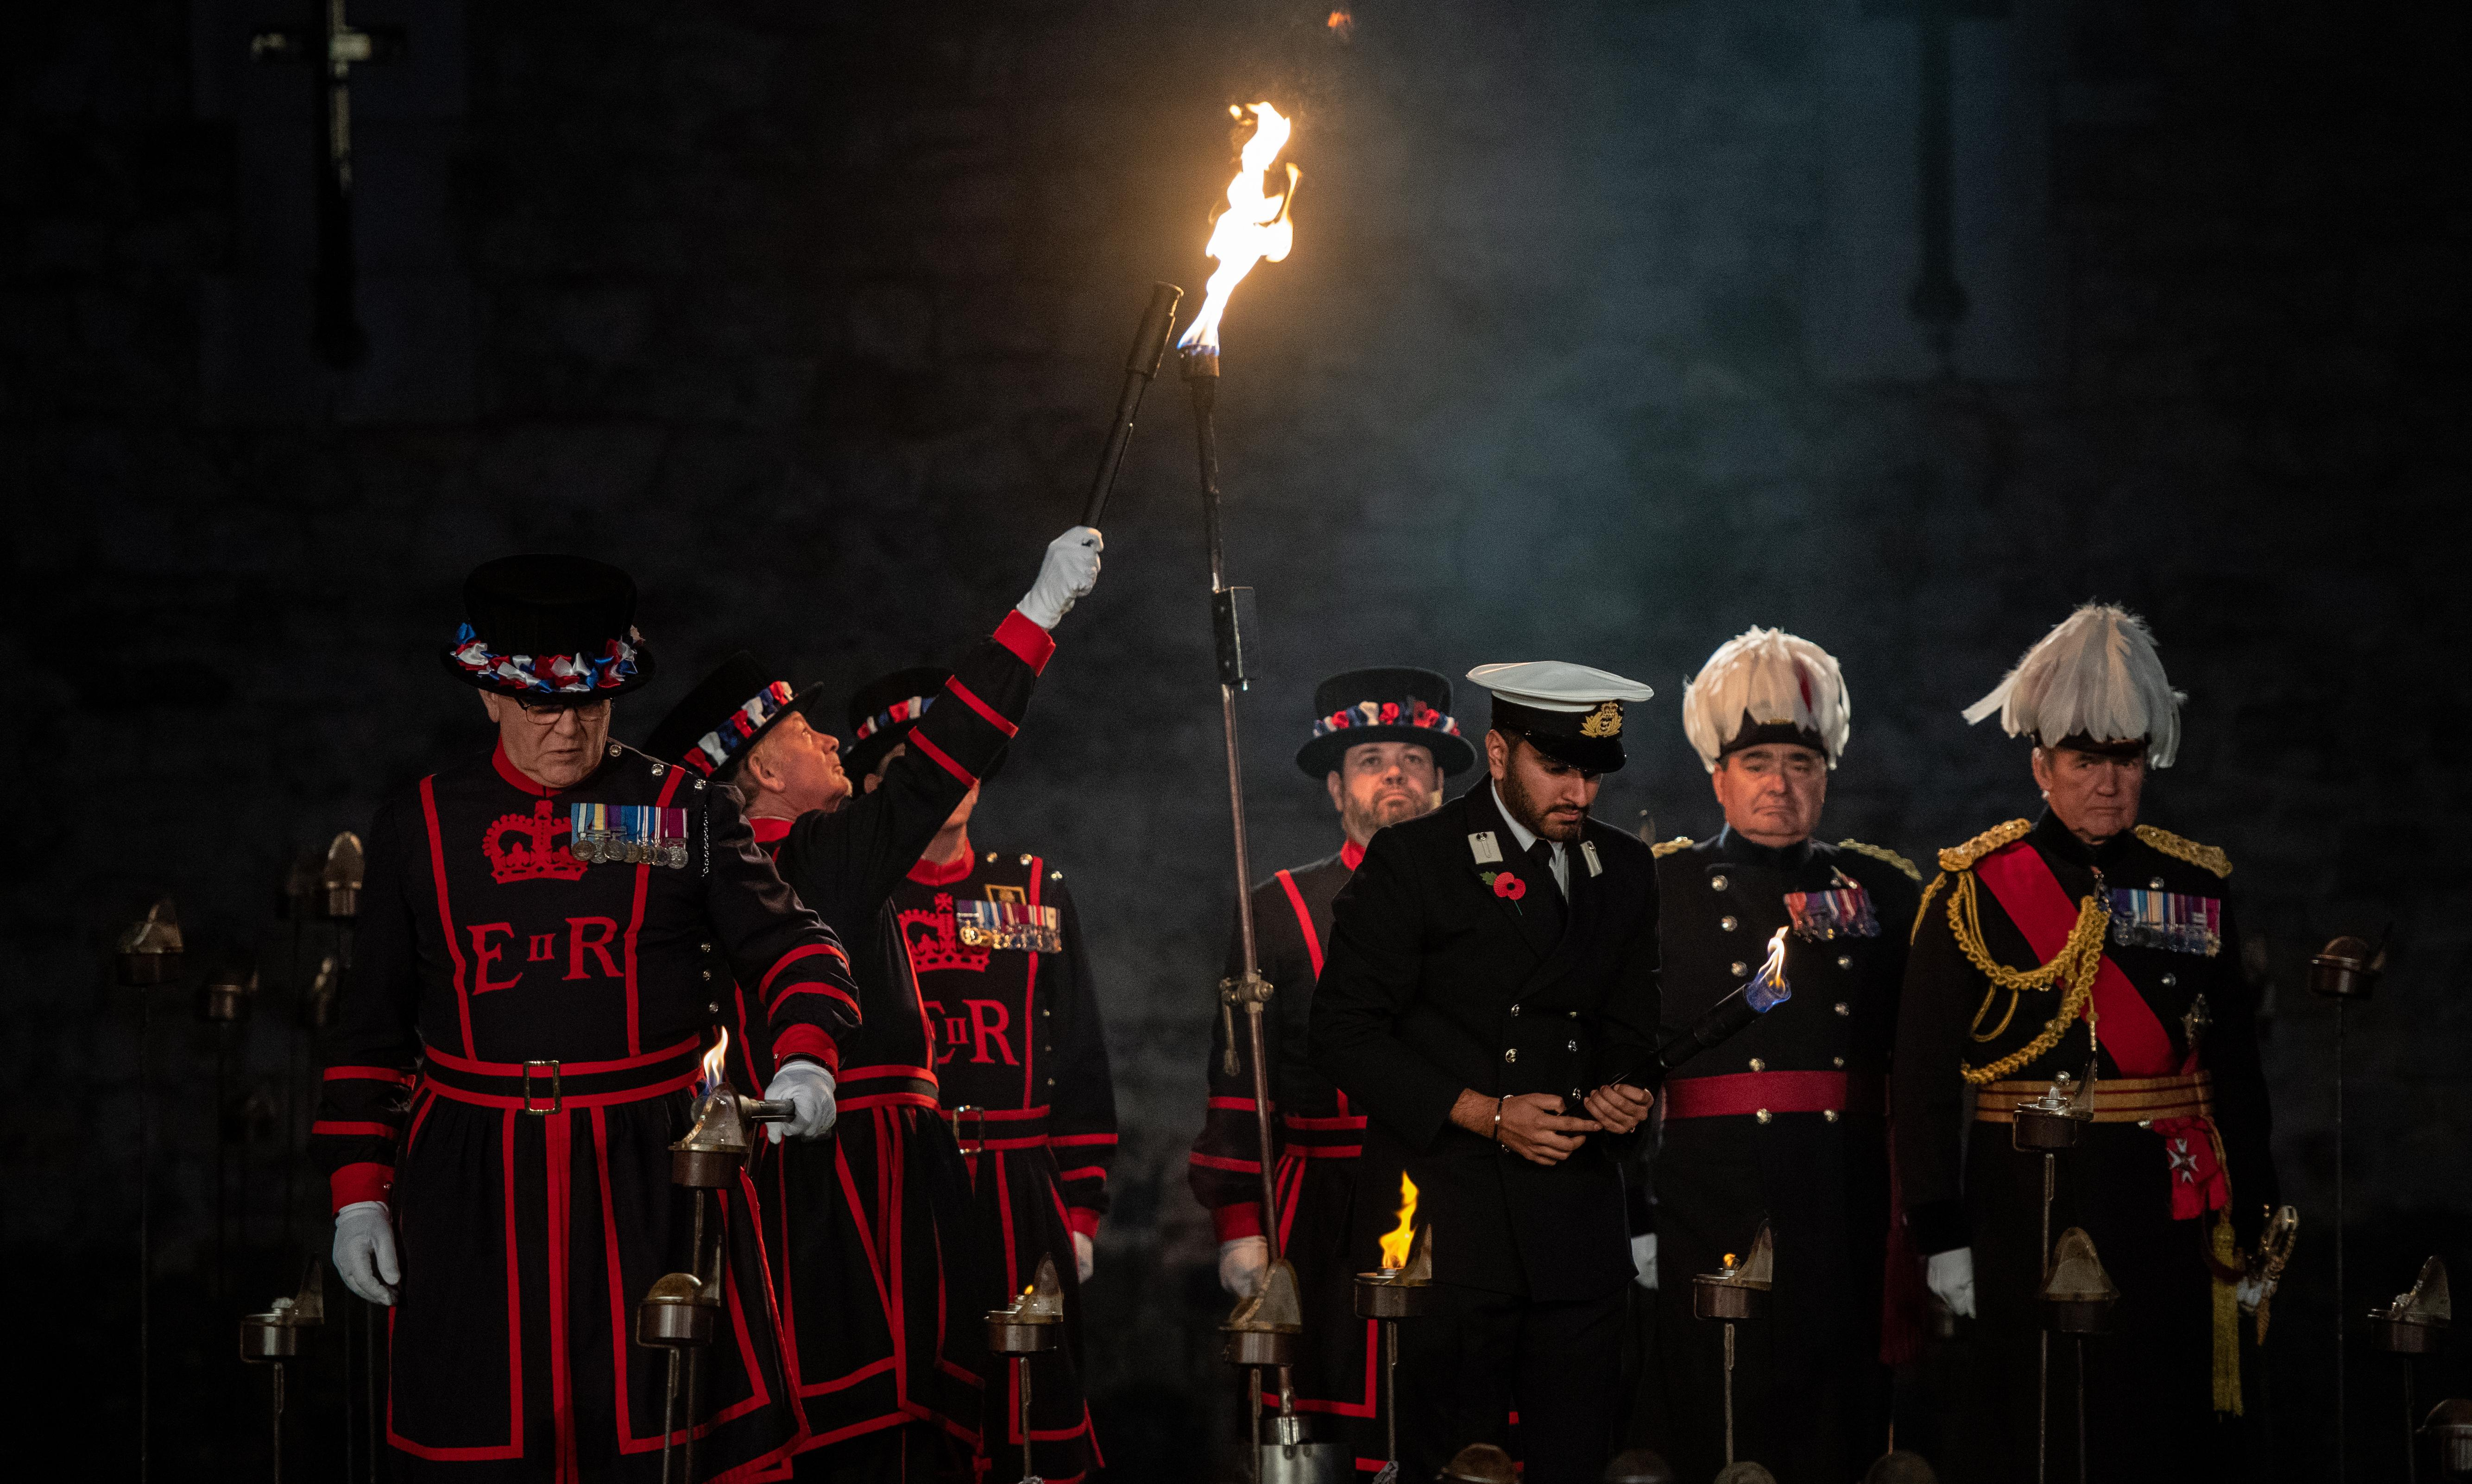 Tower of London lights up in stunning Armistice memorial